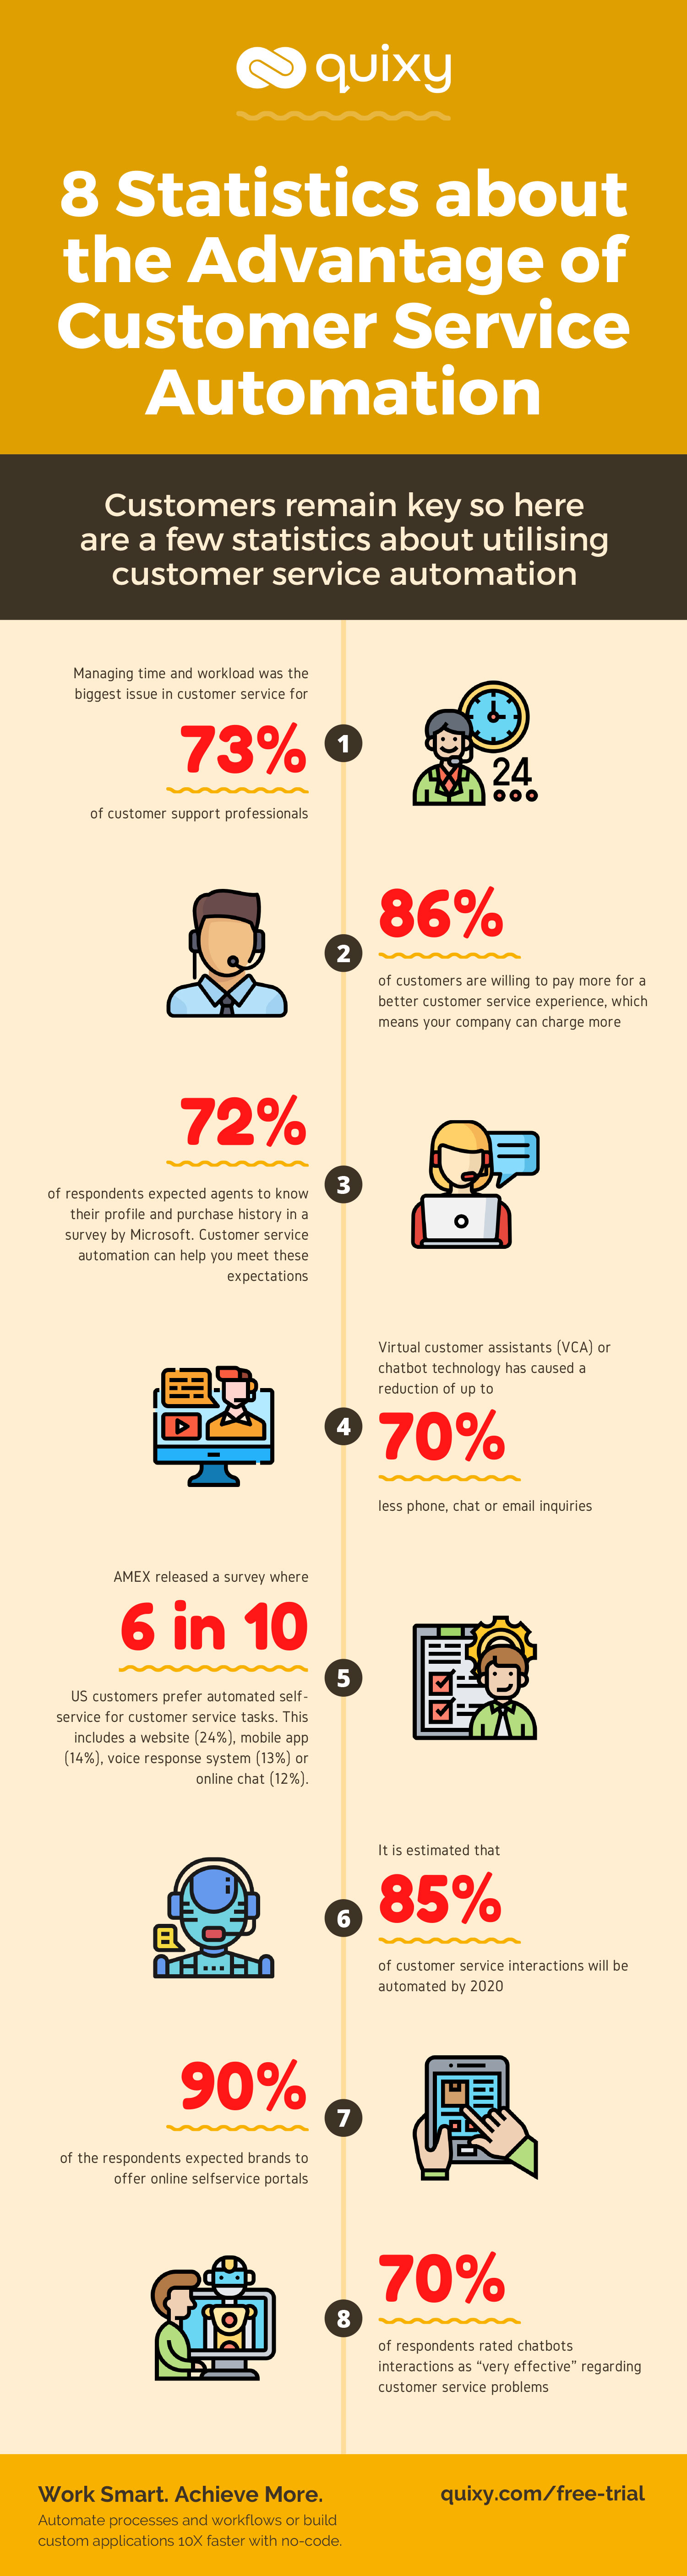 8 Statistics about the Advantage of Customer Service Automation